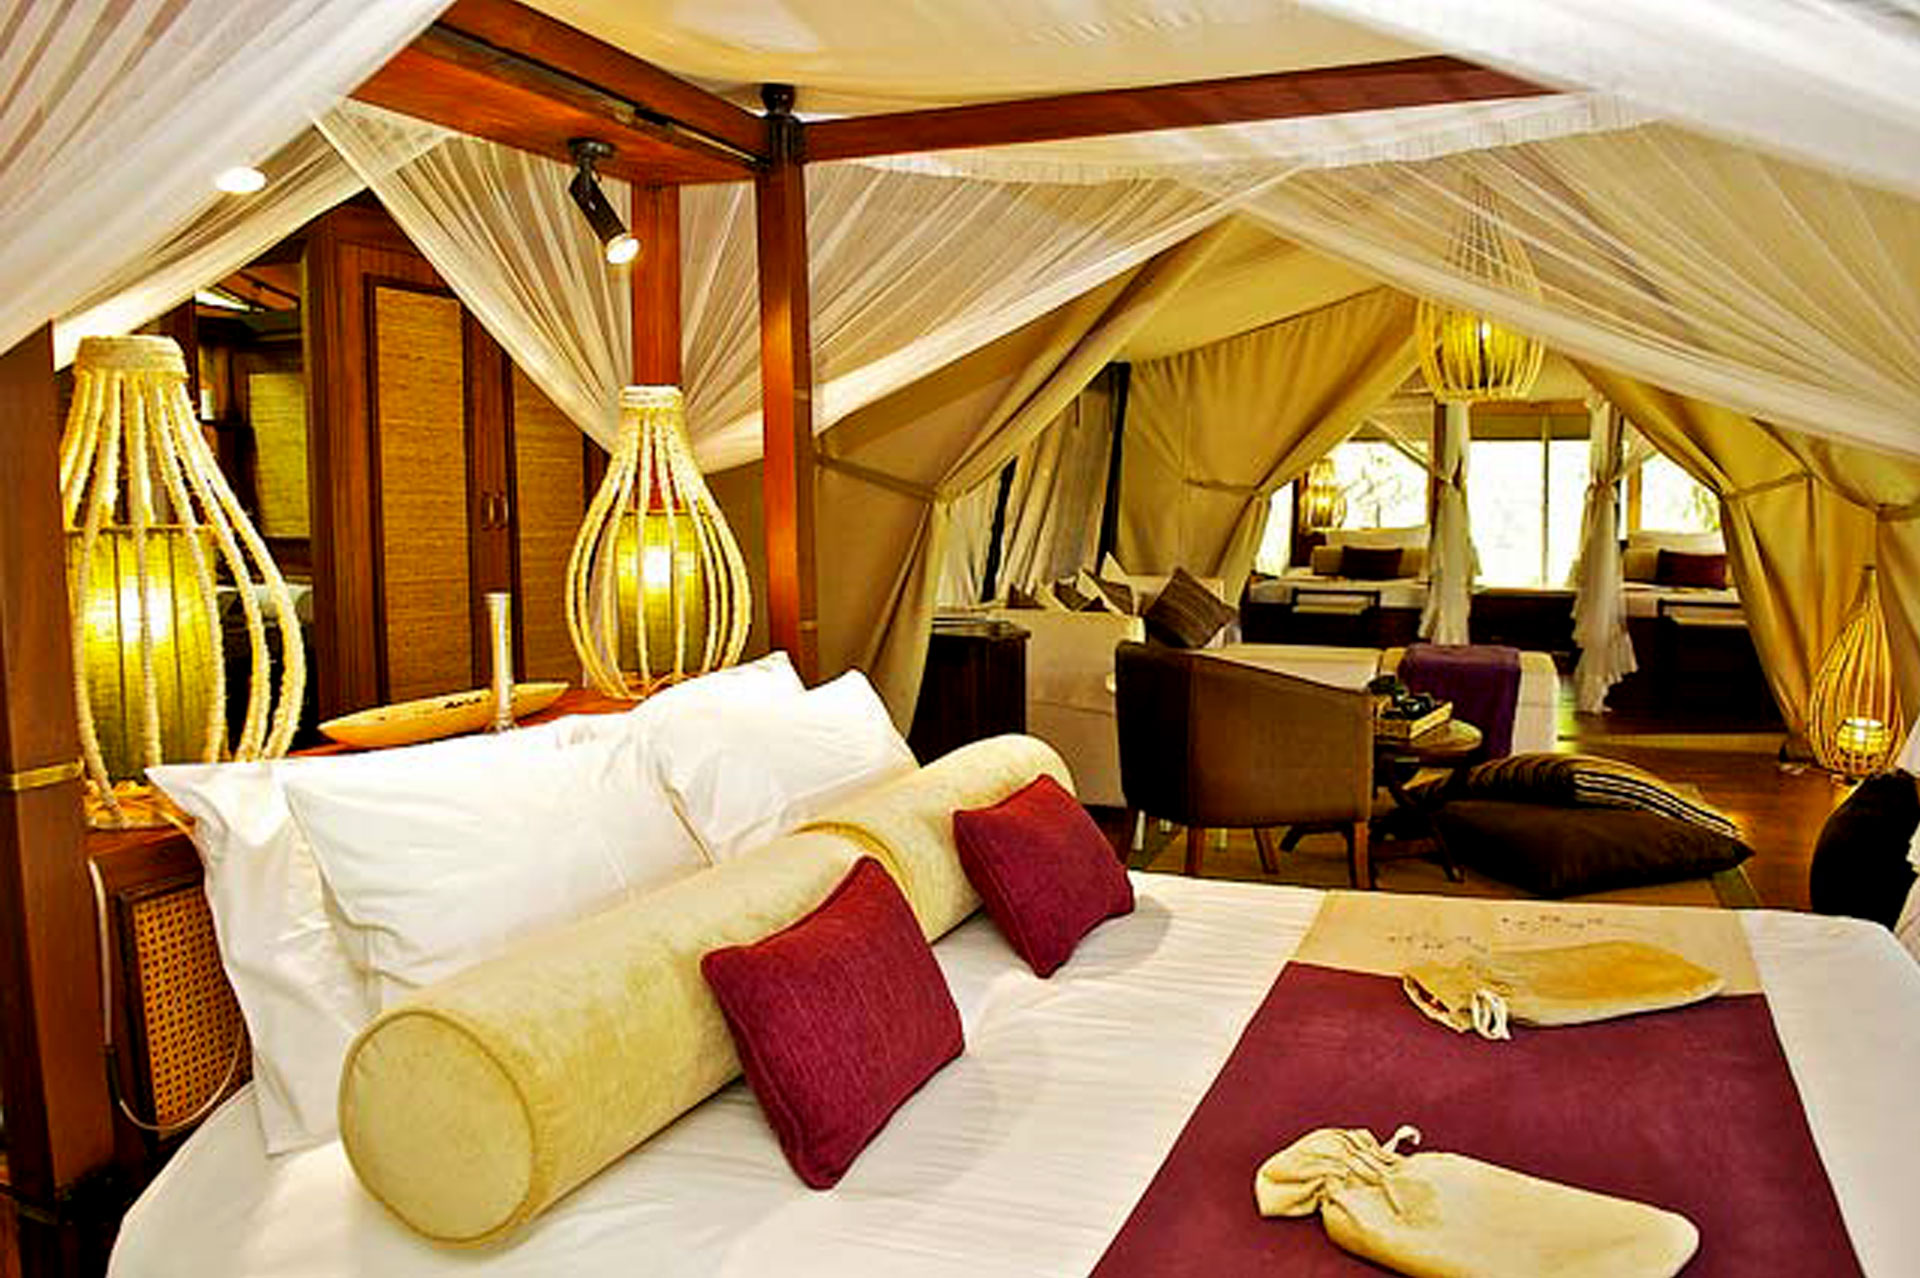 Diani_travel_center_tours_and_safaris_diani_tours_and_safaris_3_Days_masai_mara_by_-air